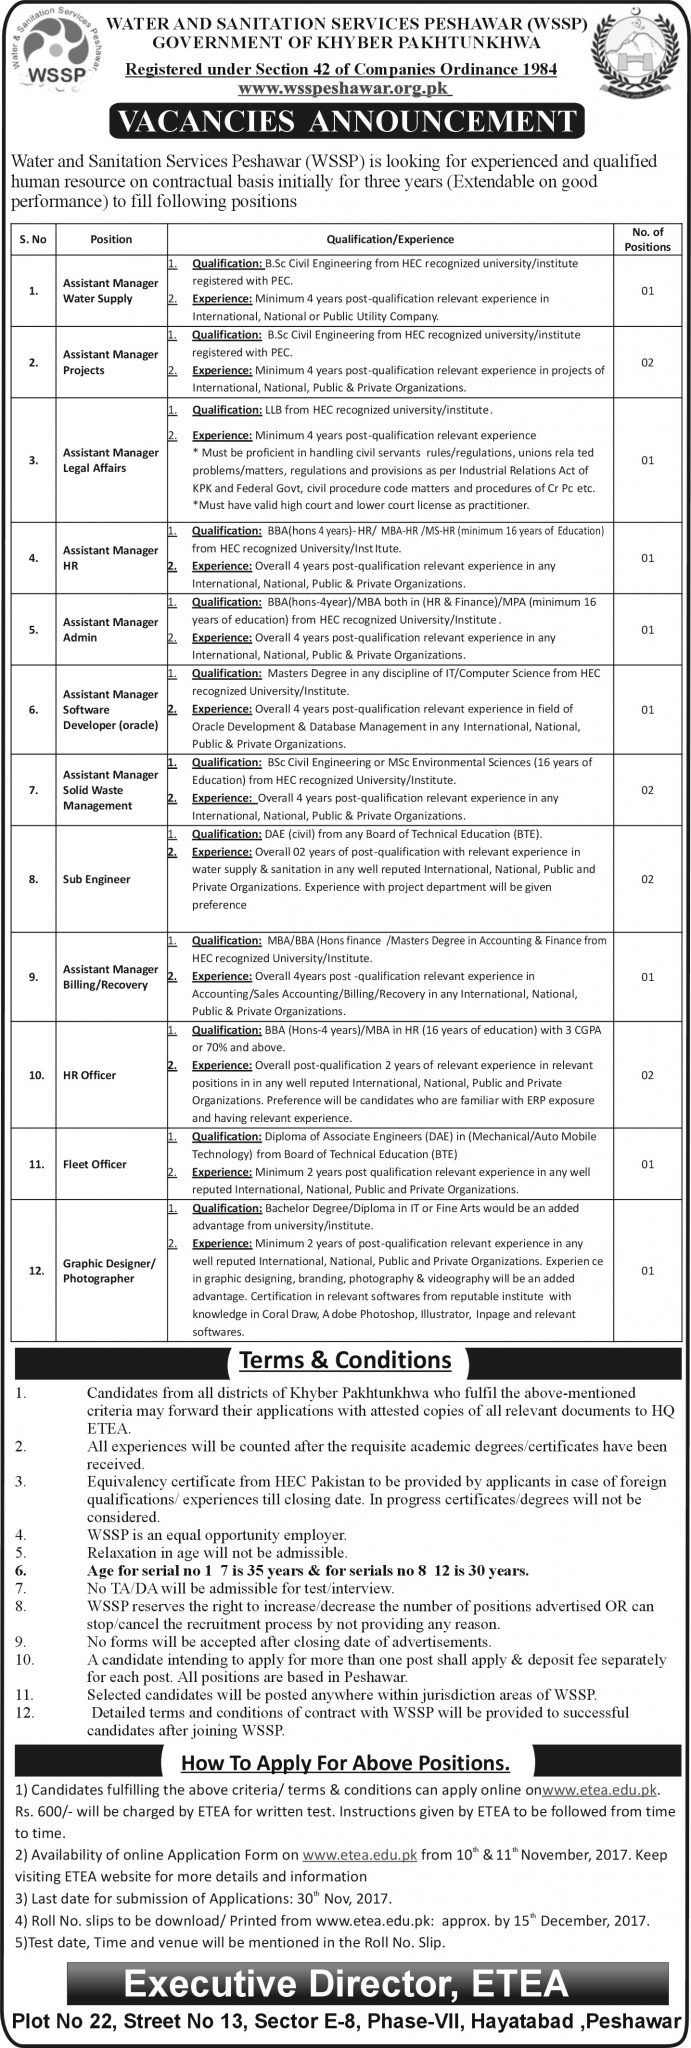 Water And Sanitation Services Peshawar WSSP Jobs 2017 For Assistant Managers And HR Officer http://www.jobsfanda.com/water-and-sanitation-services-peshawar-wssp-jobs-2017-for-assistant-managers-and-hr-officer/